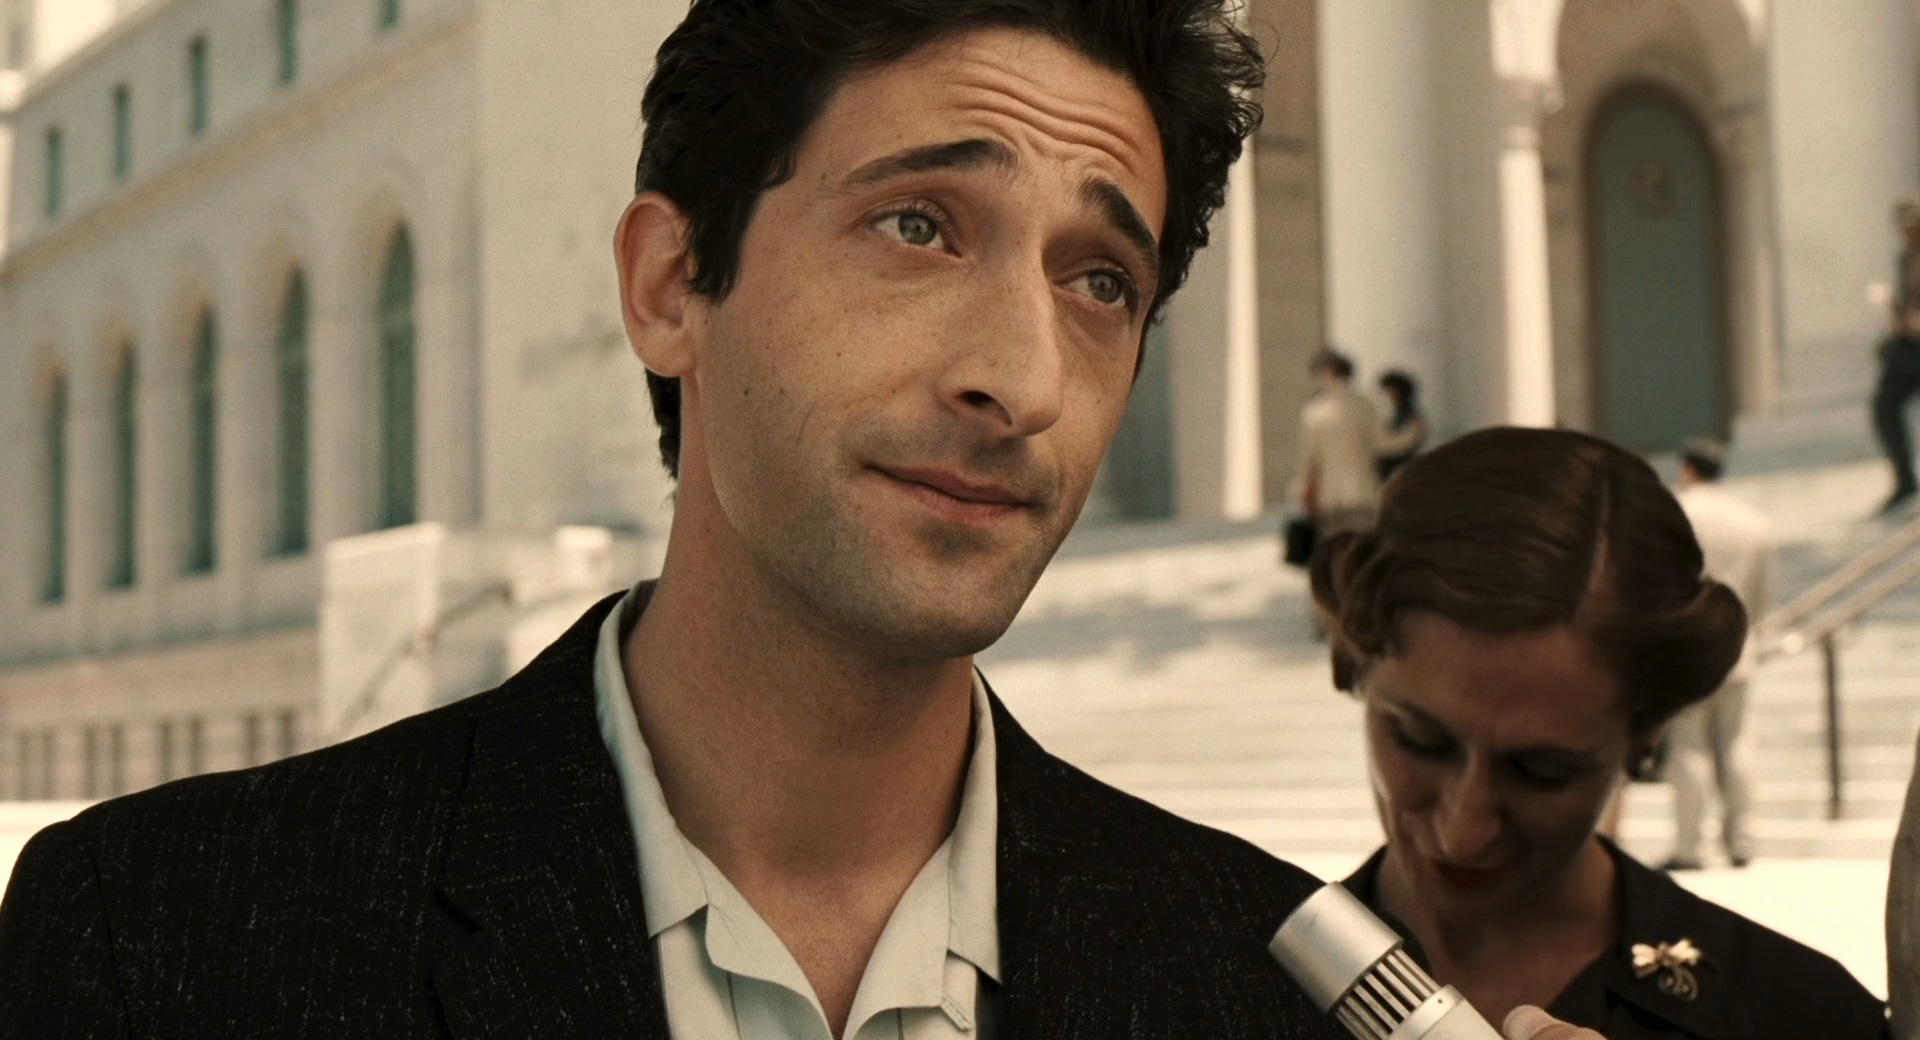 Adrien Brody as private investigator Louis Simo in Hollywoodland (2006)